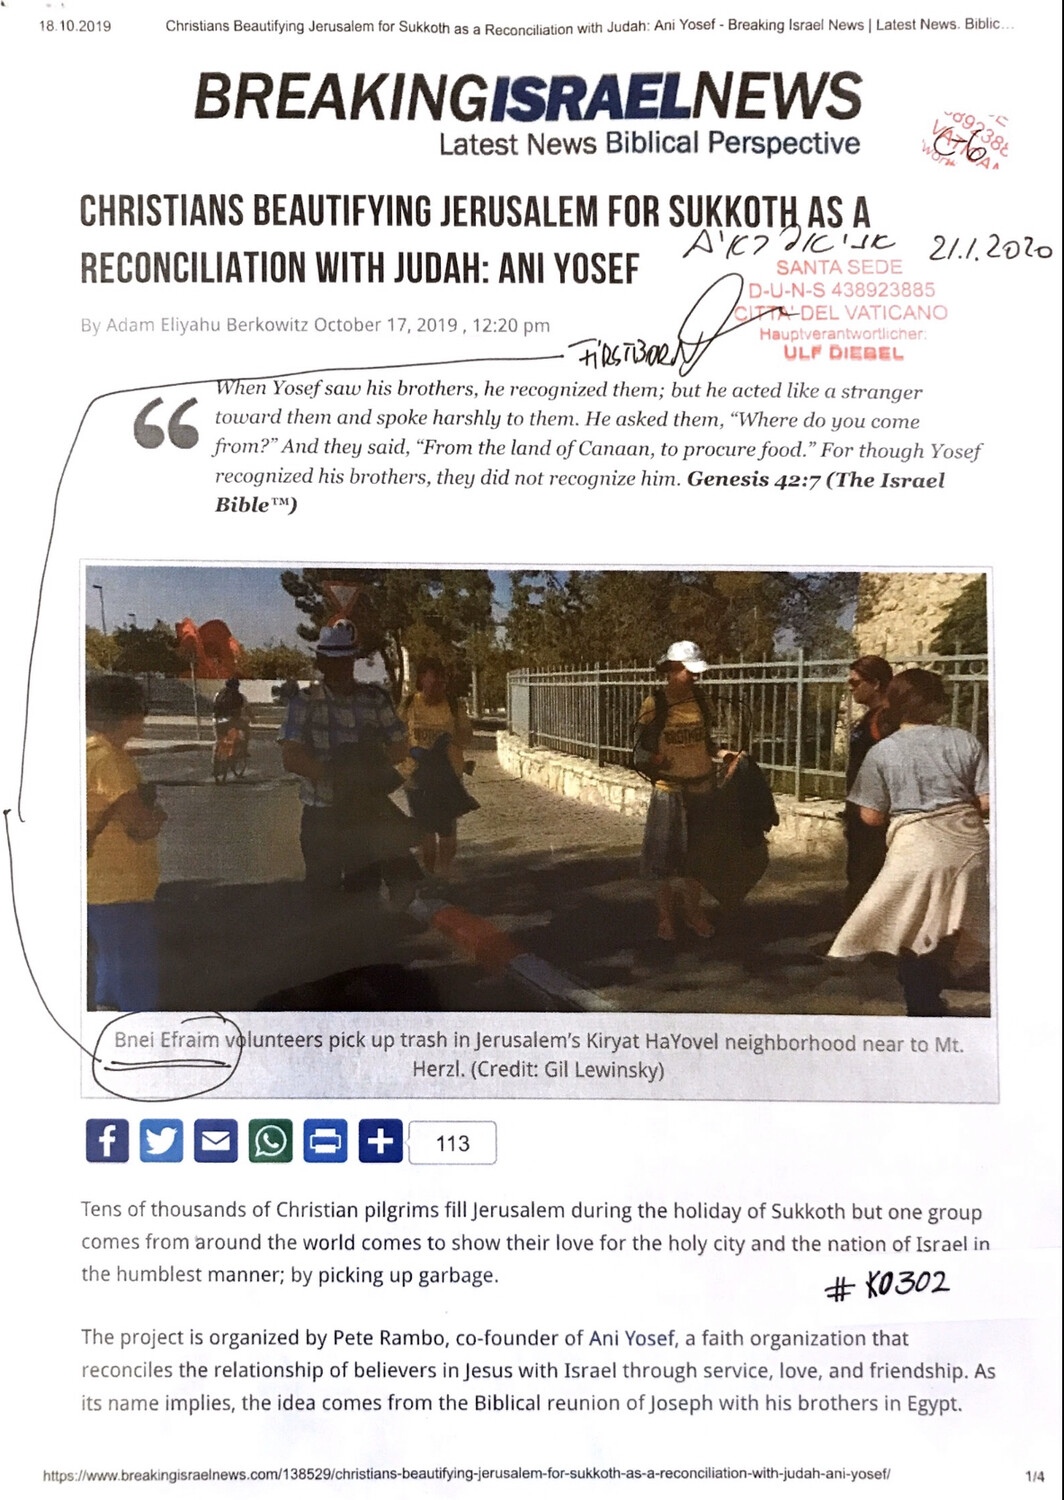 #K0302 l Breaking Israel News - Christians beautifying Jerusalem for Sukkoth as a reconciliation with Judah: Ani Yosef